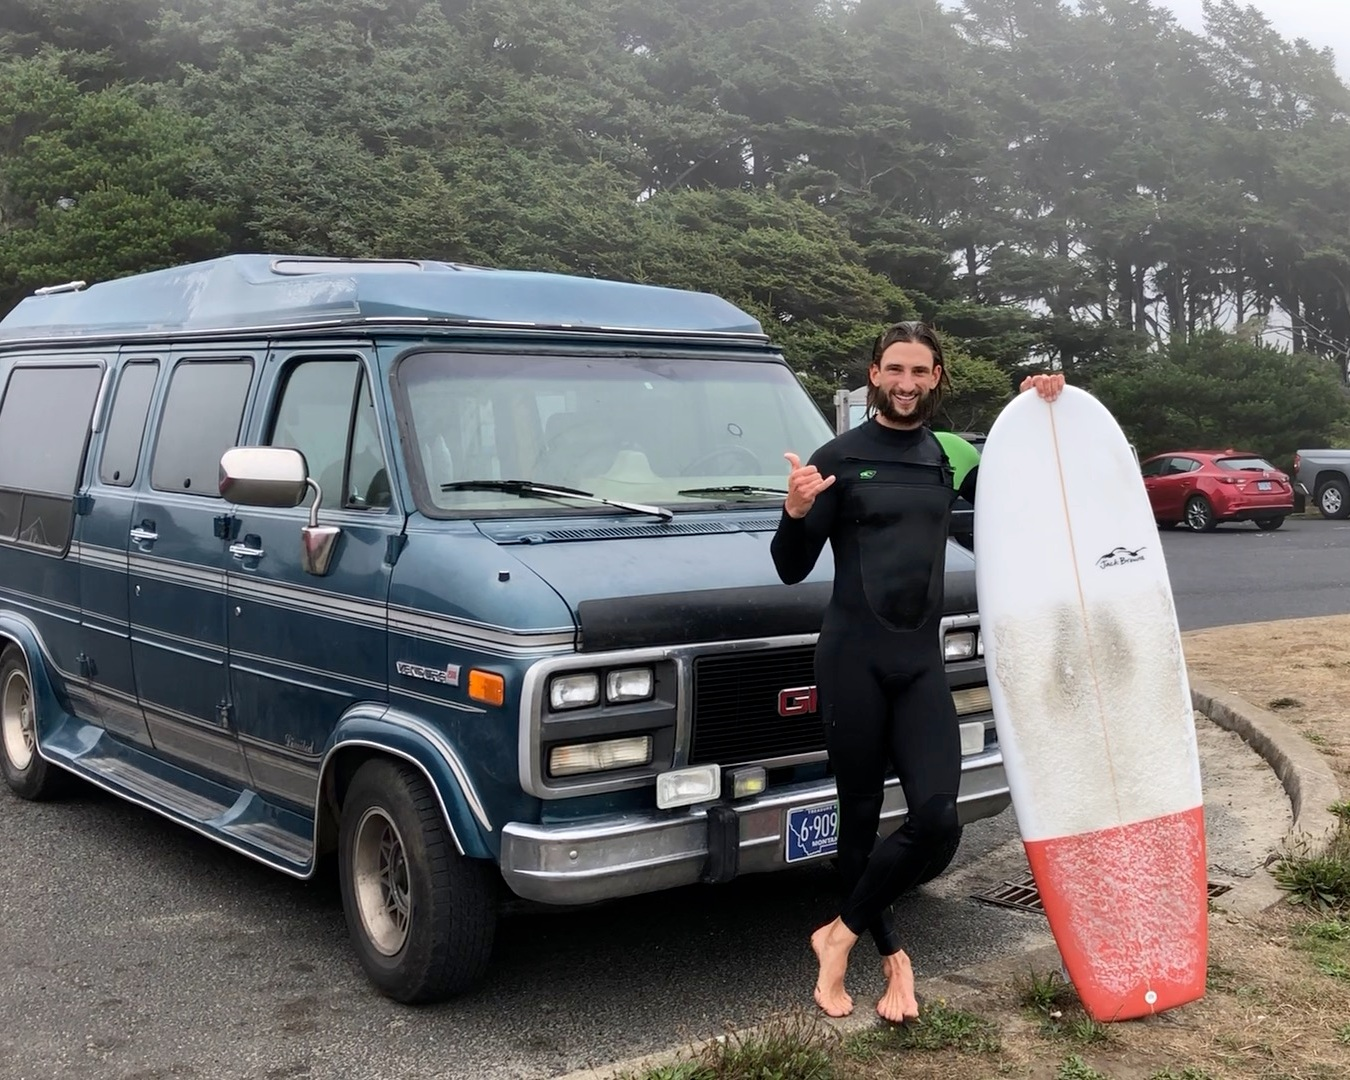 Australian-Matts-camper-van-bought-in-the-US-for-epic-road-trip